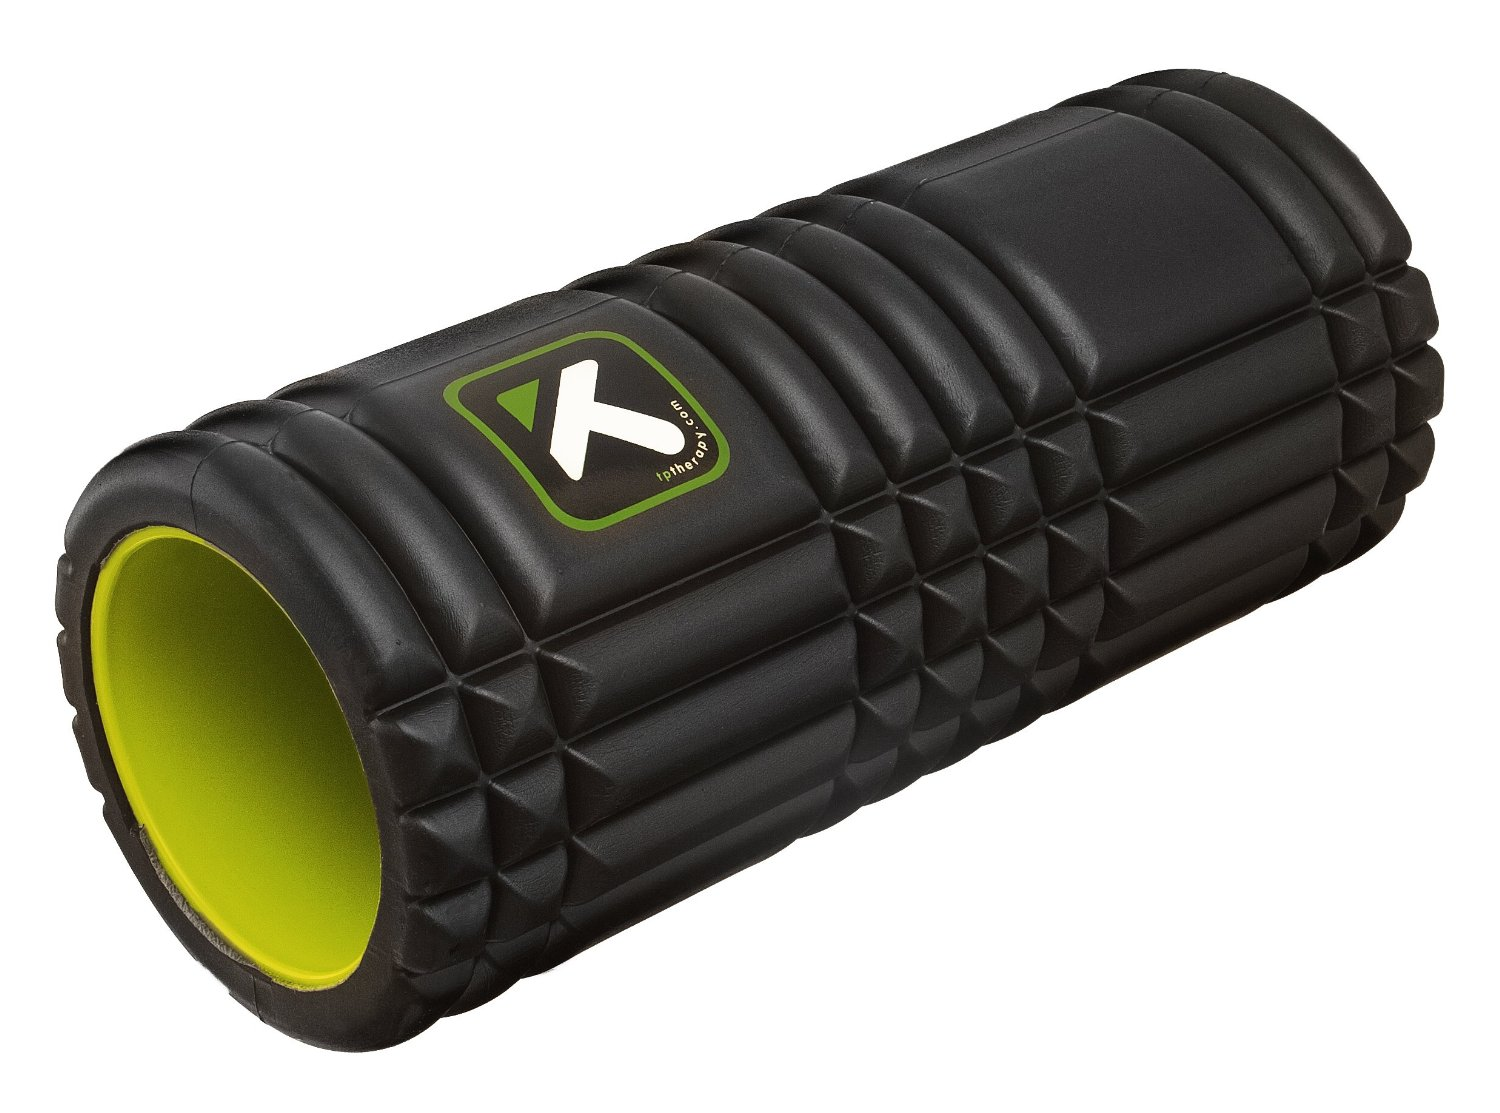 Trigger Point GRID Foam Roller, 13 x 5.5 inches